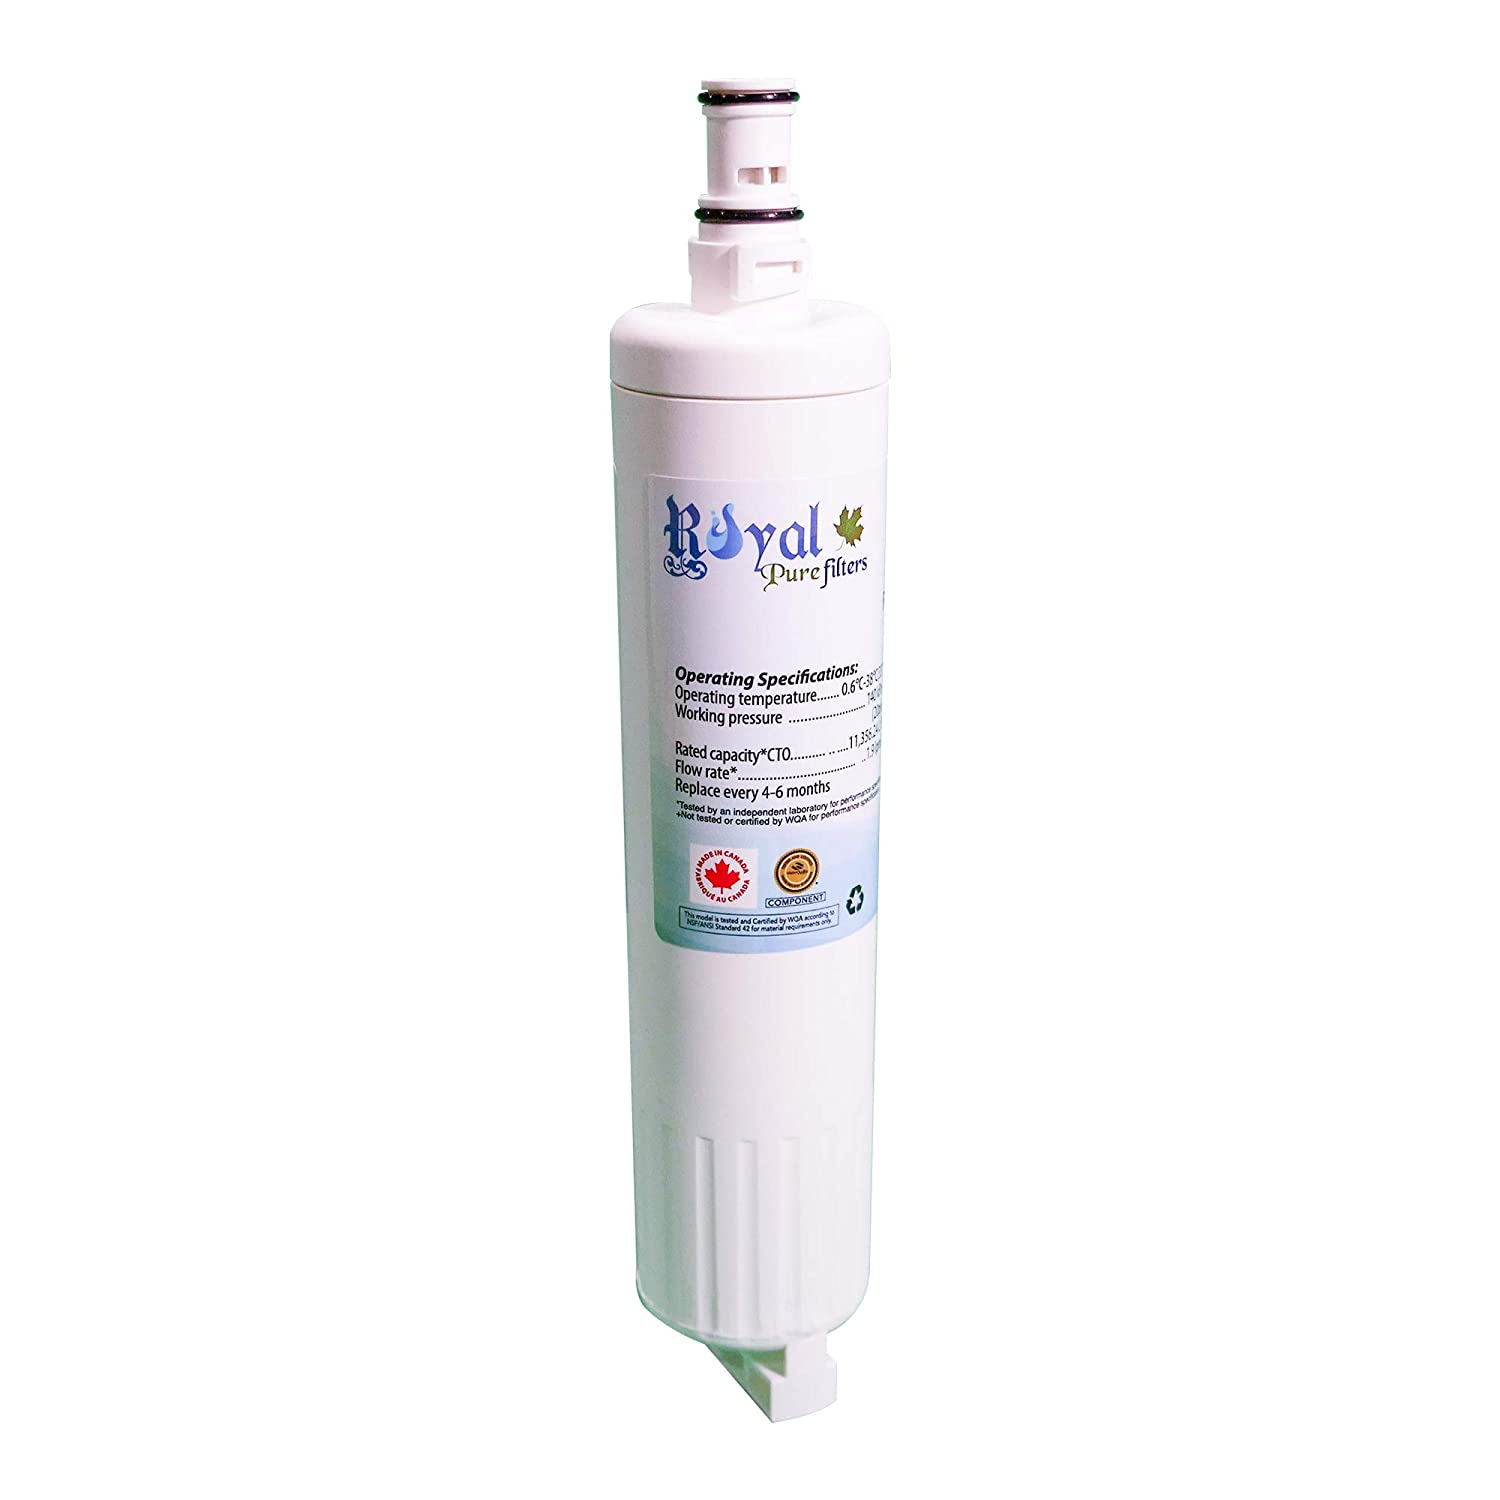 Whirlpool 4396508 Compatible Refrigirator Water Filter RPF-4396508 by Royal  Pure Filters - fits in place of EveryDrop Ice & Water Refrigerator Filter